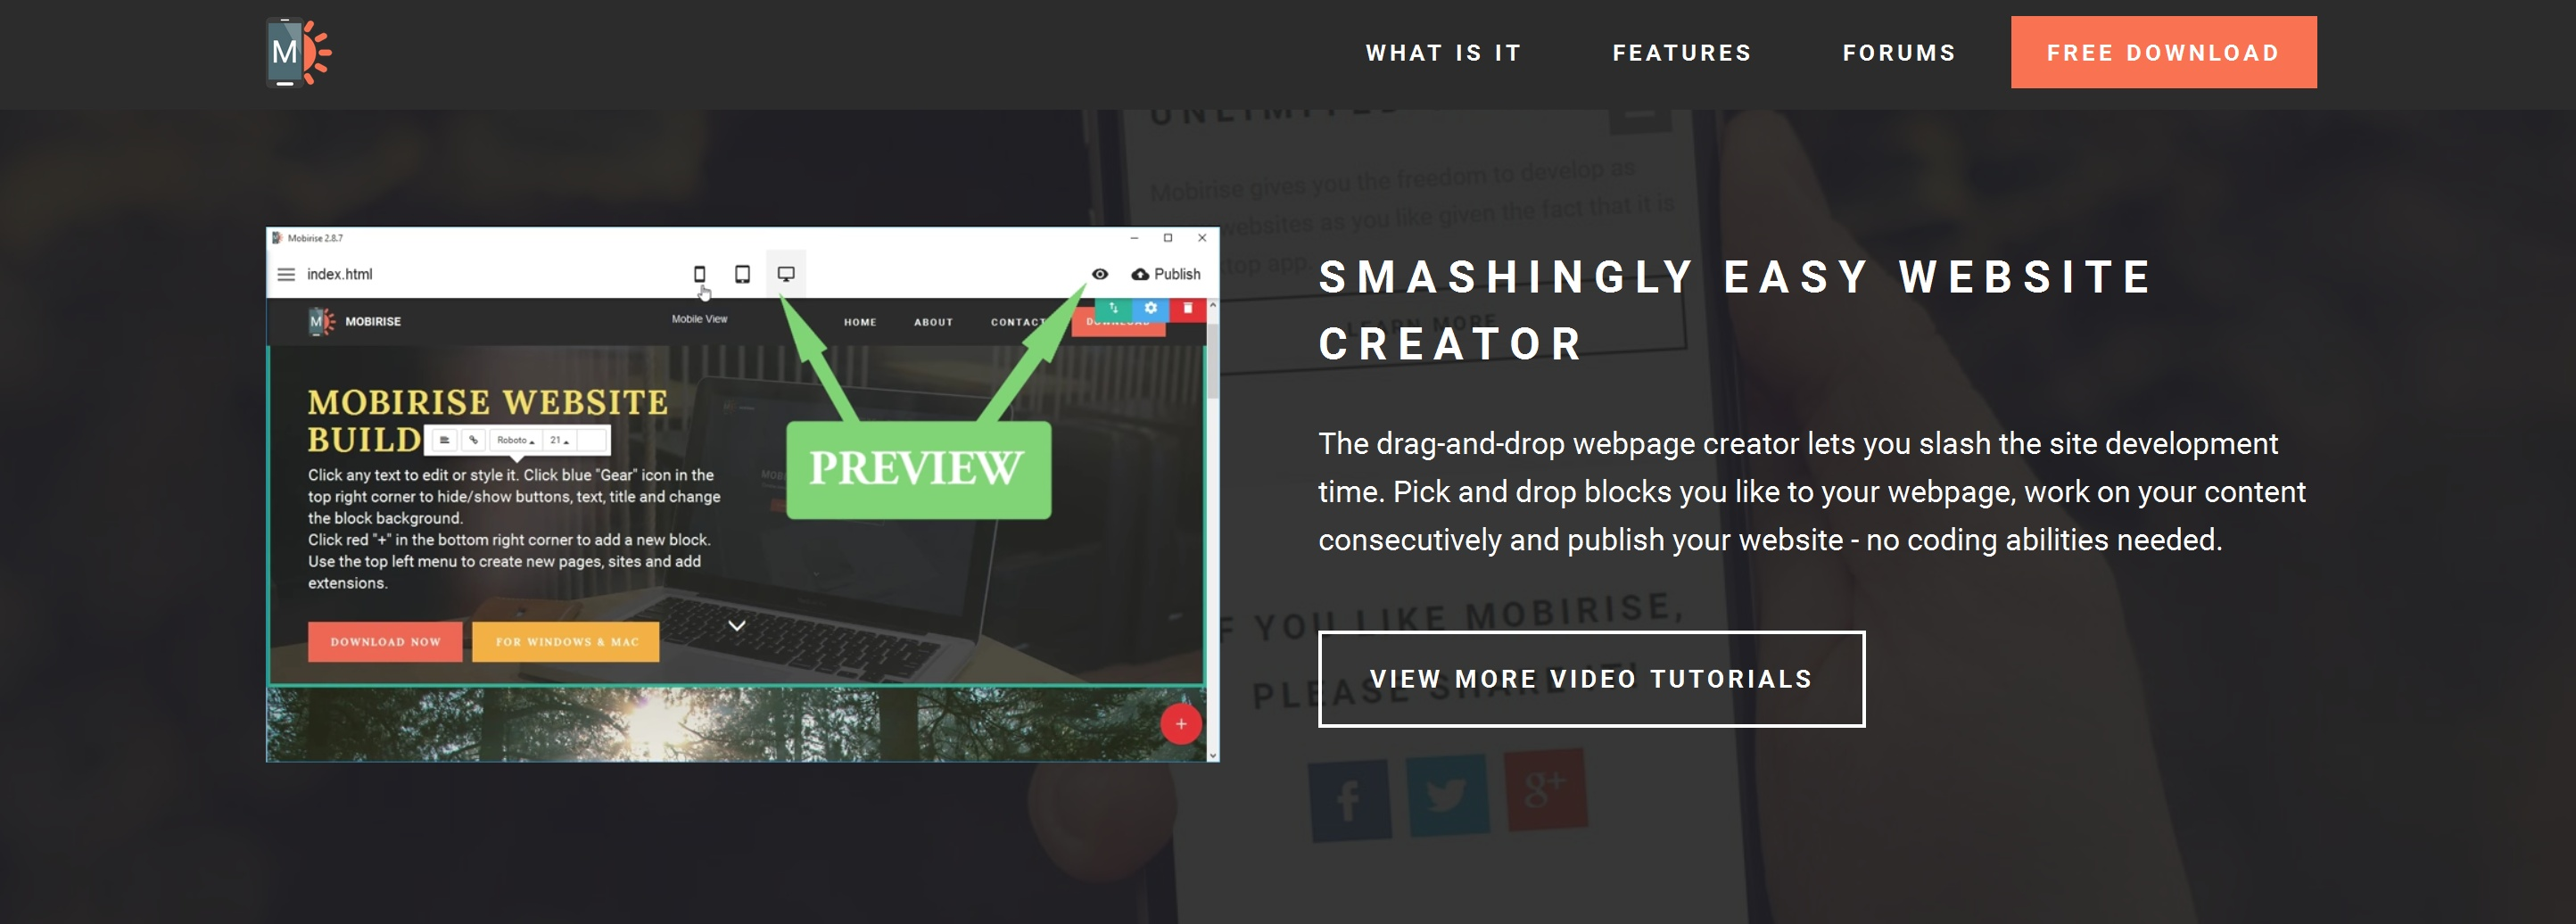 Drag and Drop Simple Website Builder Tool